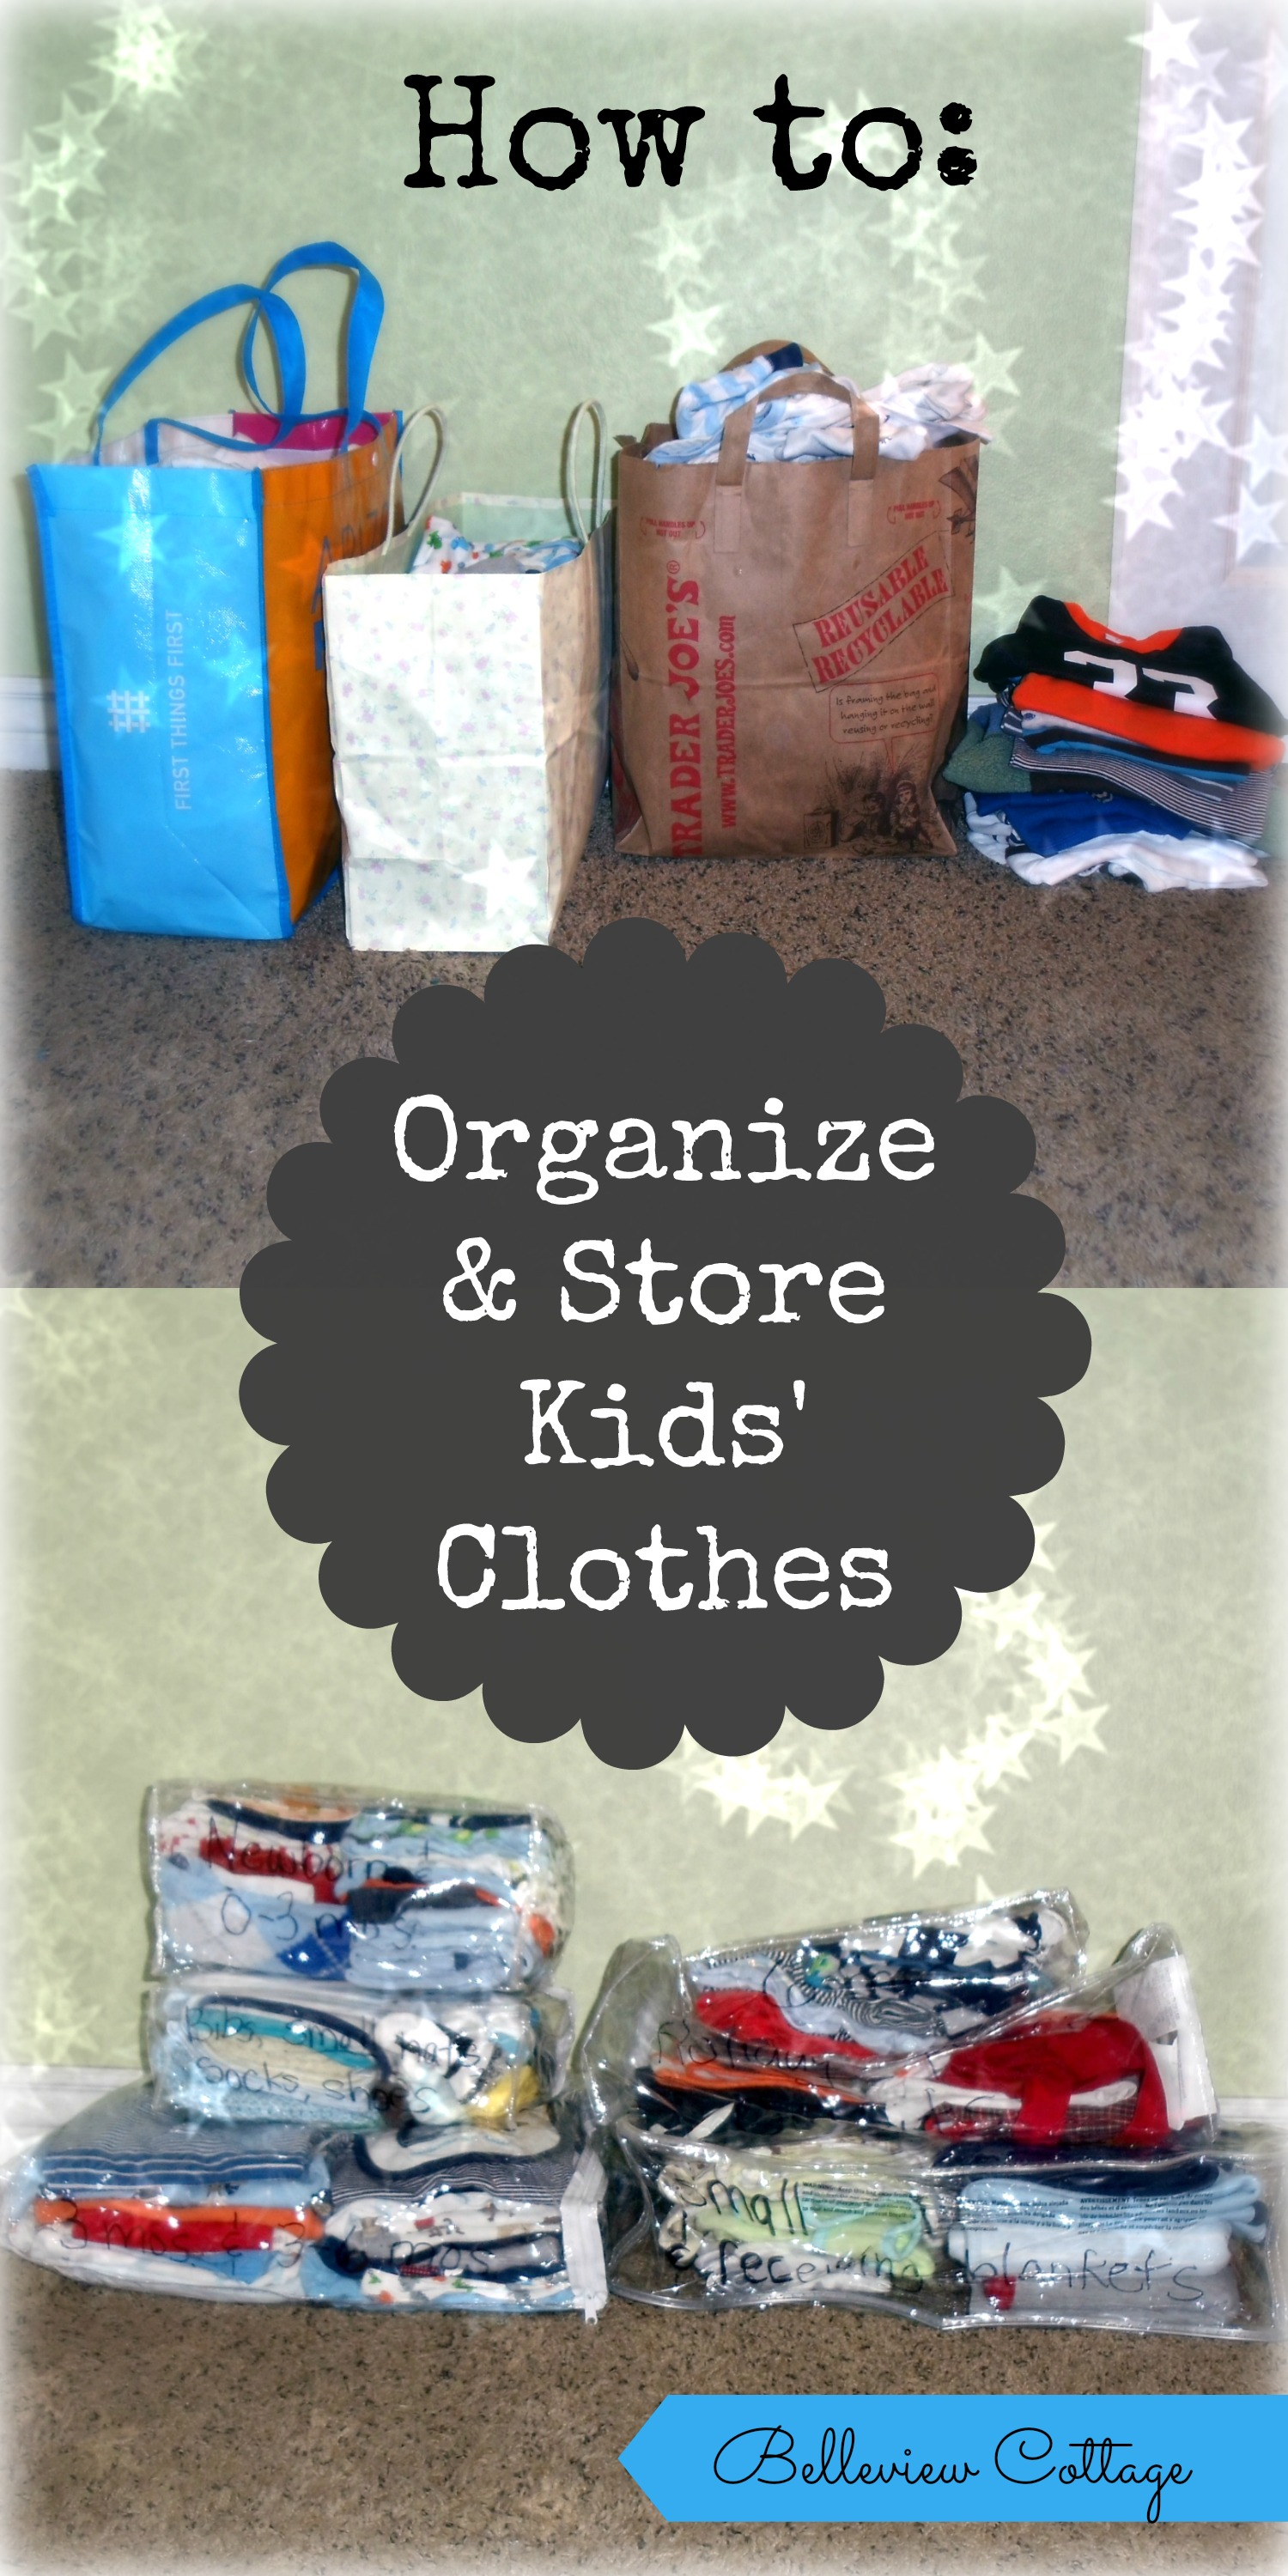 How To Organize And Store Kids Clothes Life Hack